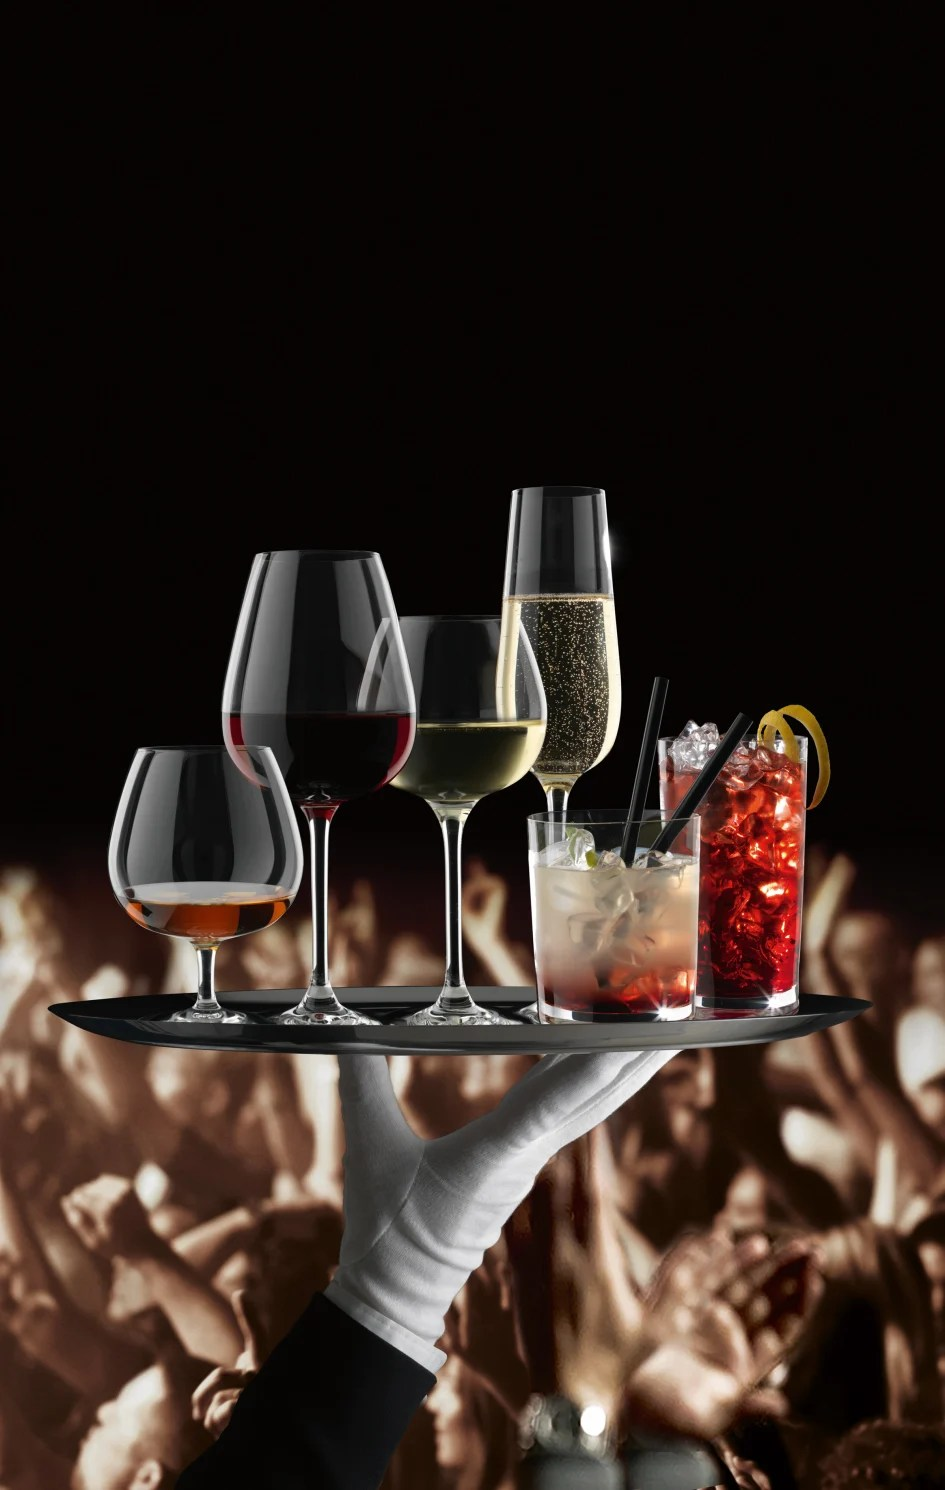 Gastronomie Glas Professional Glassware Selection Neues Einfaches Villeroy